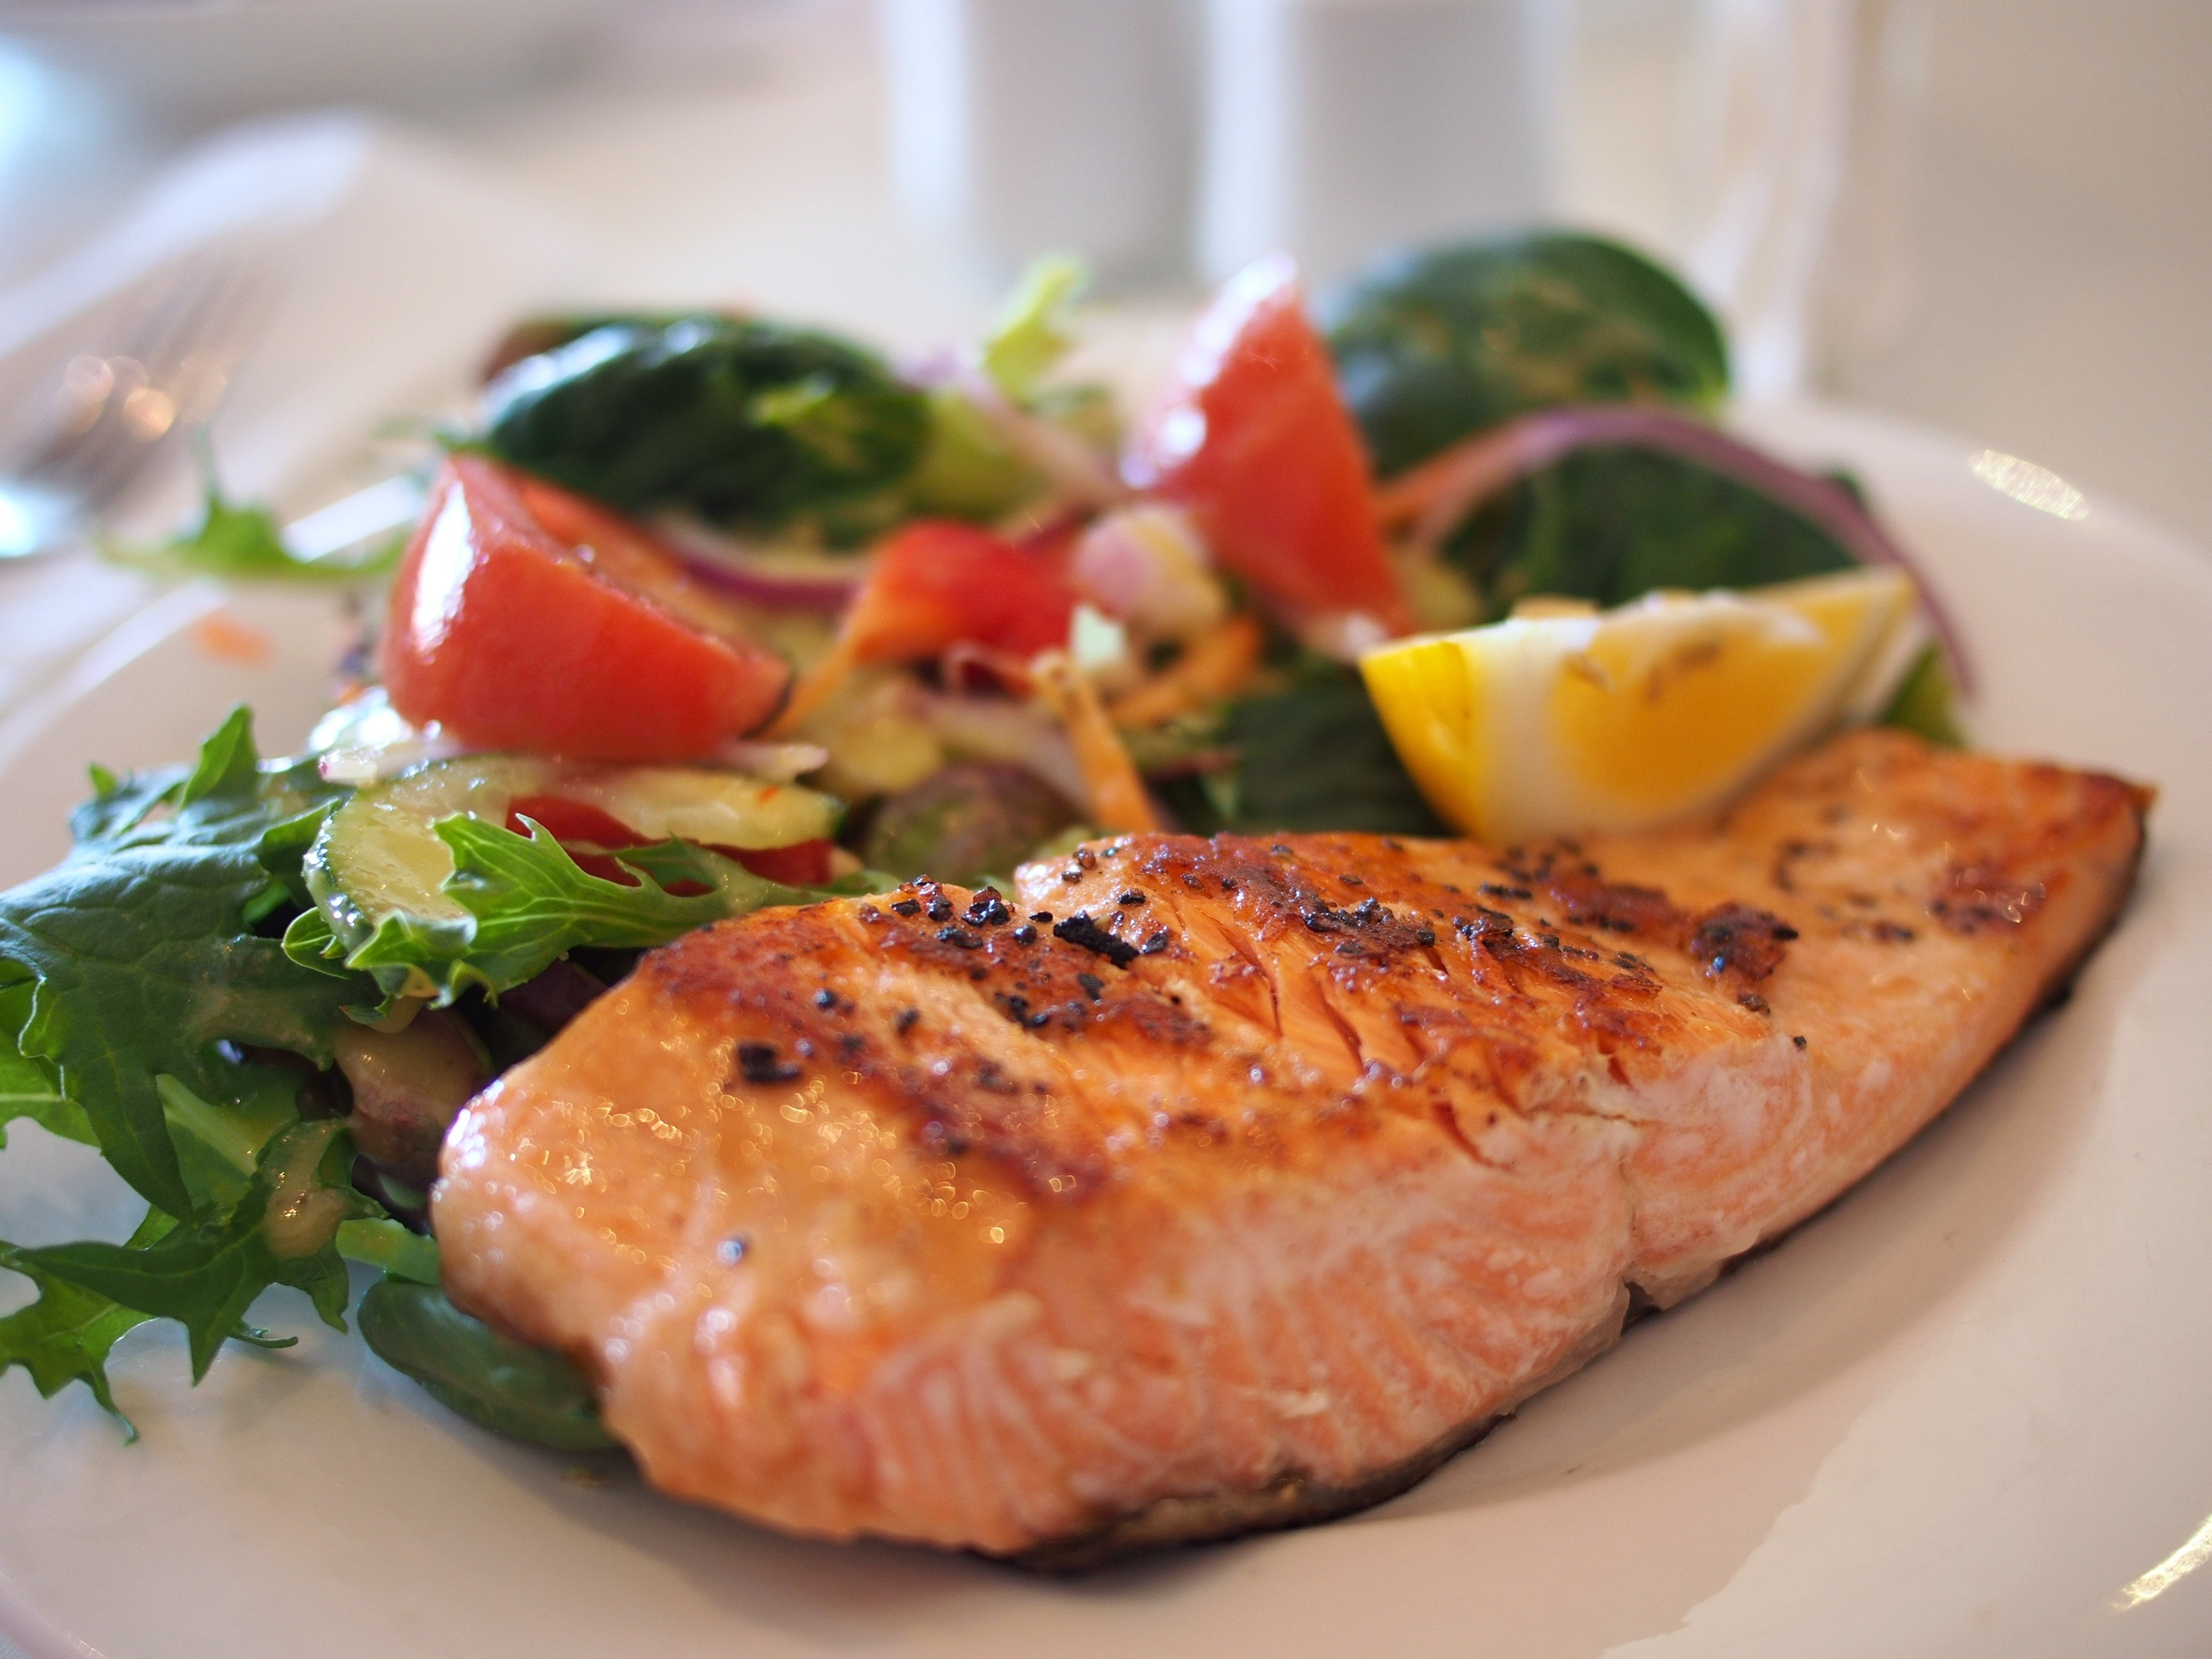 salmon-dish-food-meal-omega